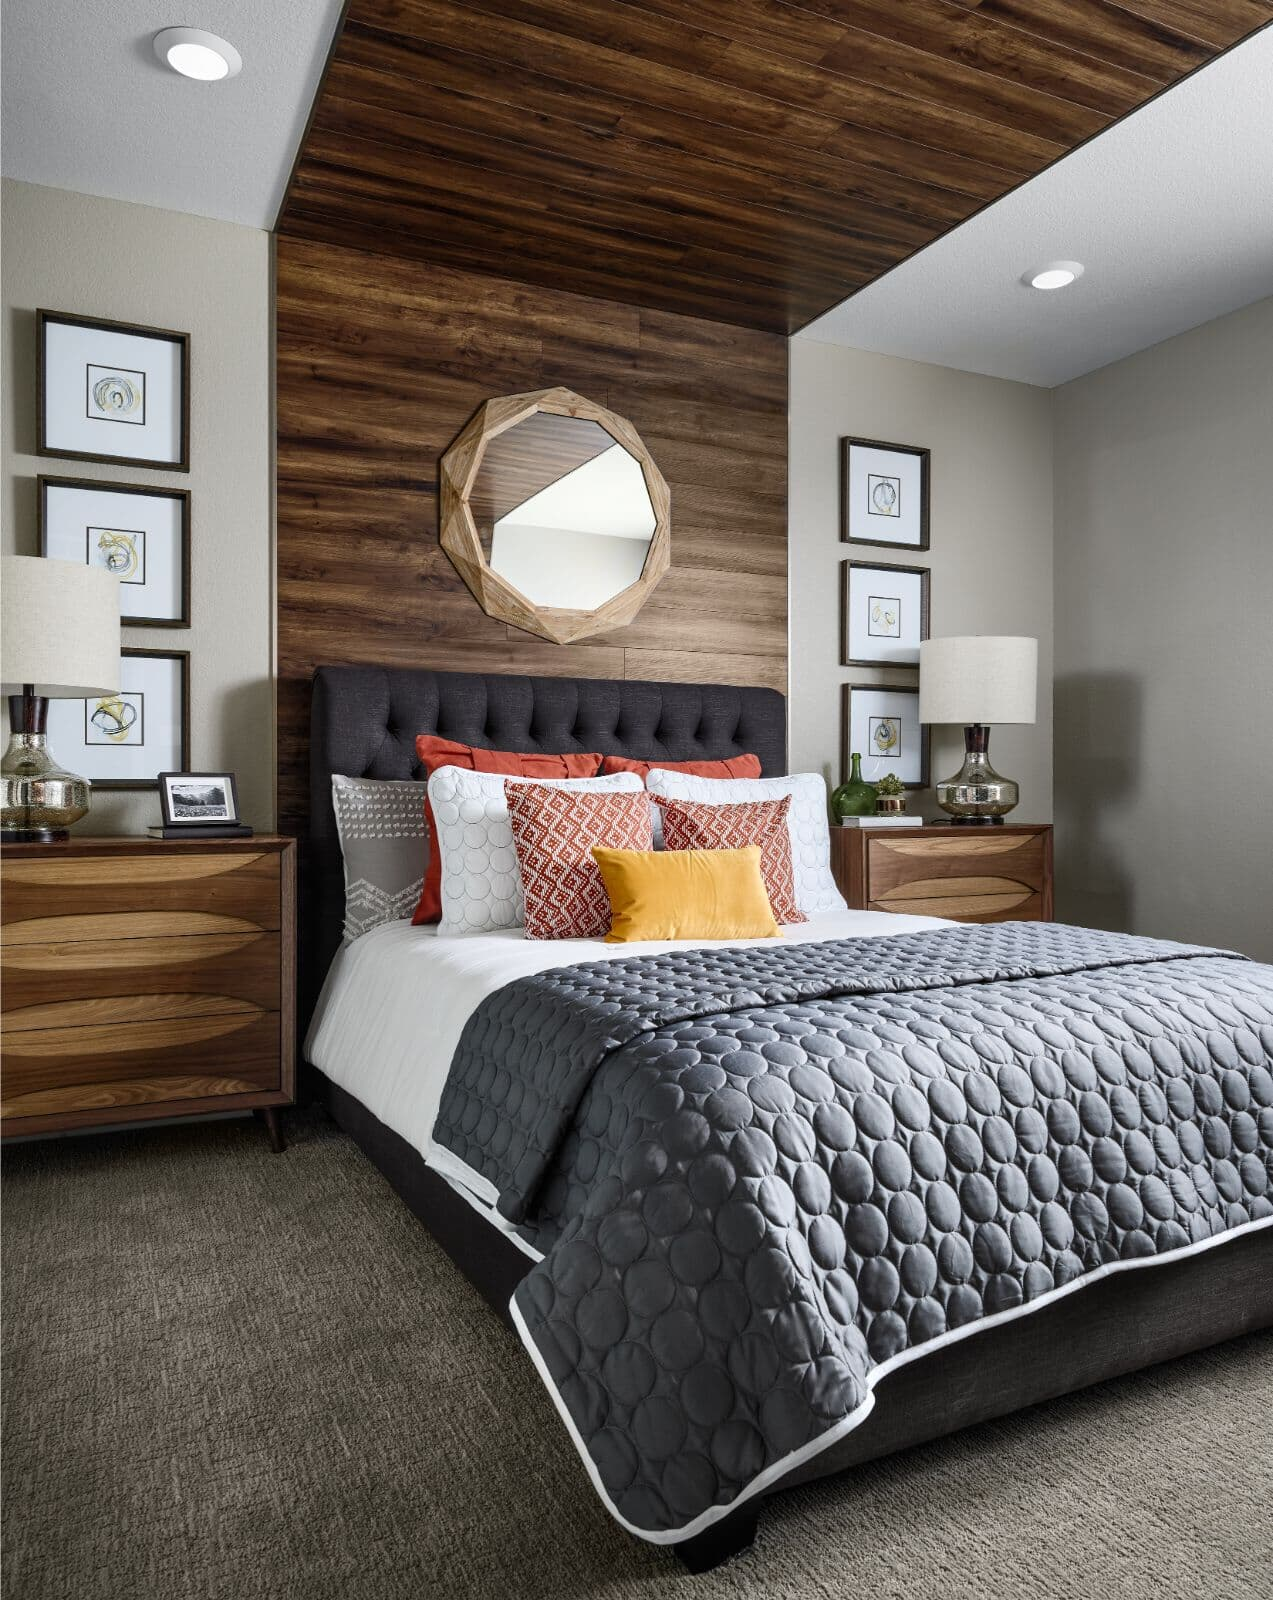 Ovation One Guest Bedroom Brighton Crossings Denver Colorado